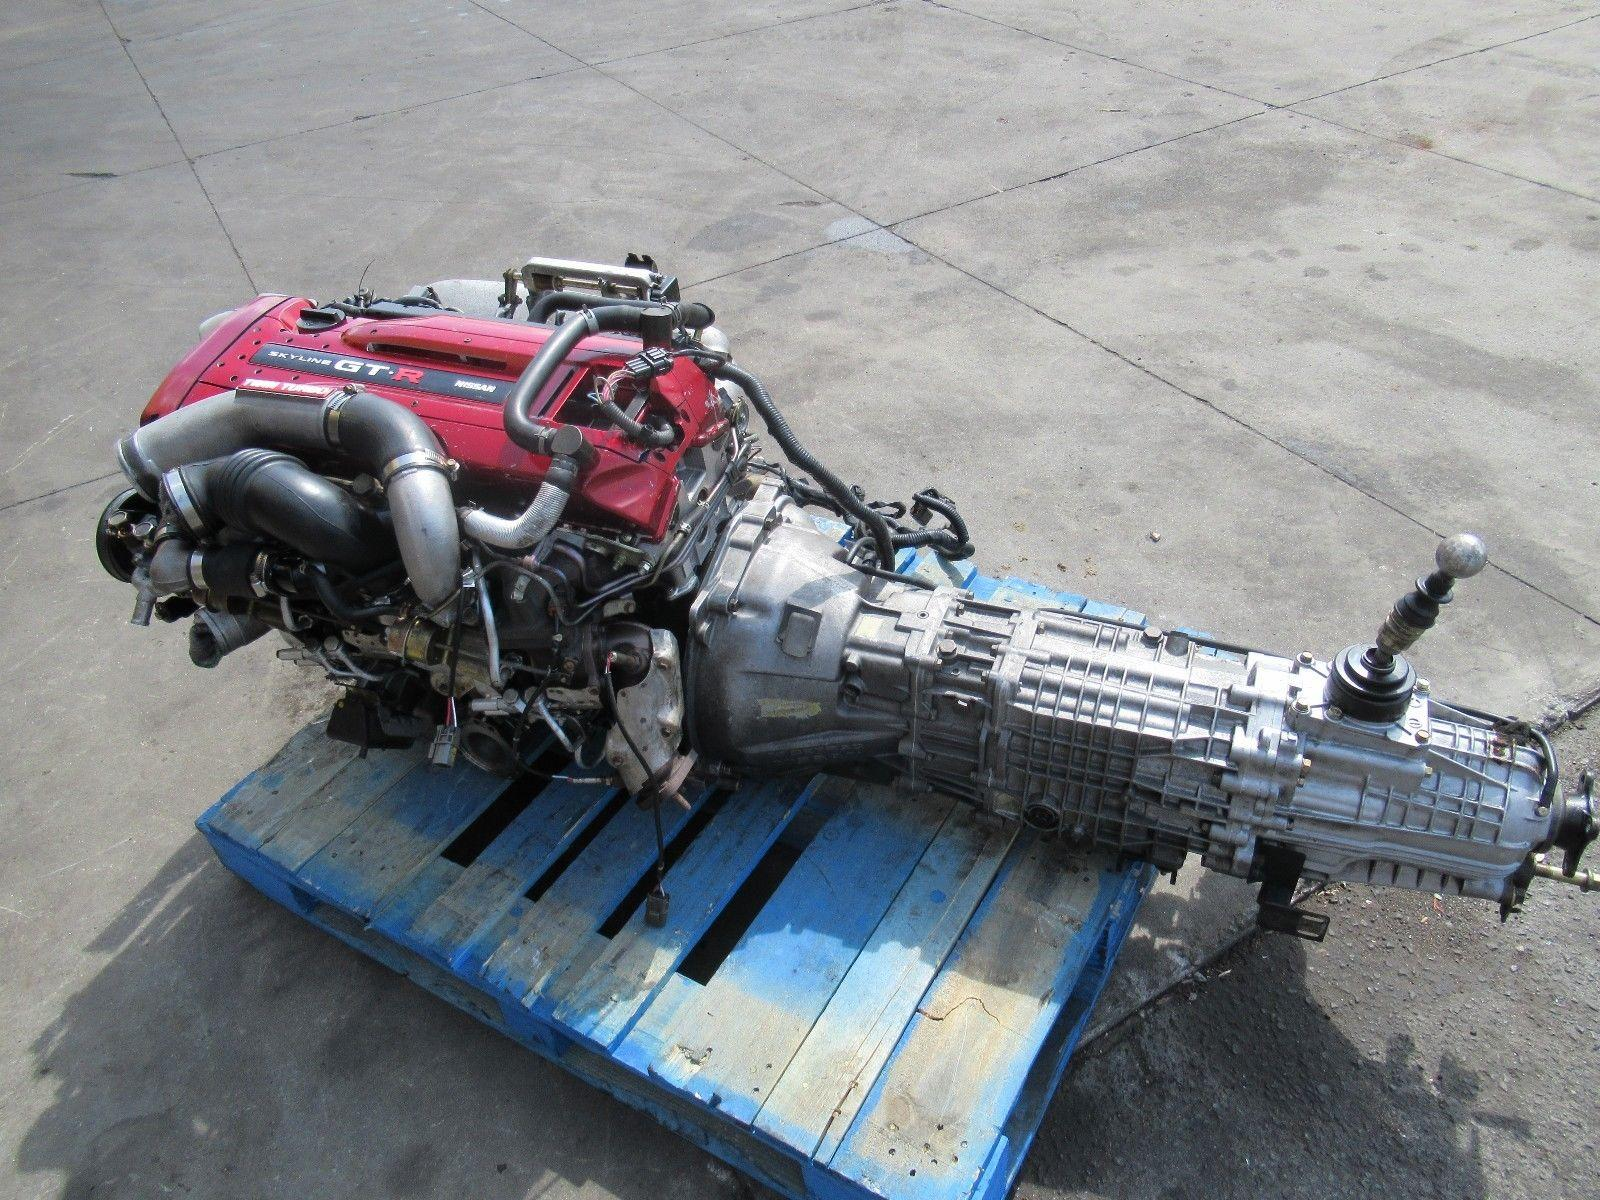 Nissan Skyline R34 Gtr Rb26det Engine Race Car Parts For Sale At Rb26 Wiring Harness